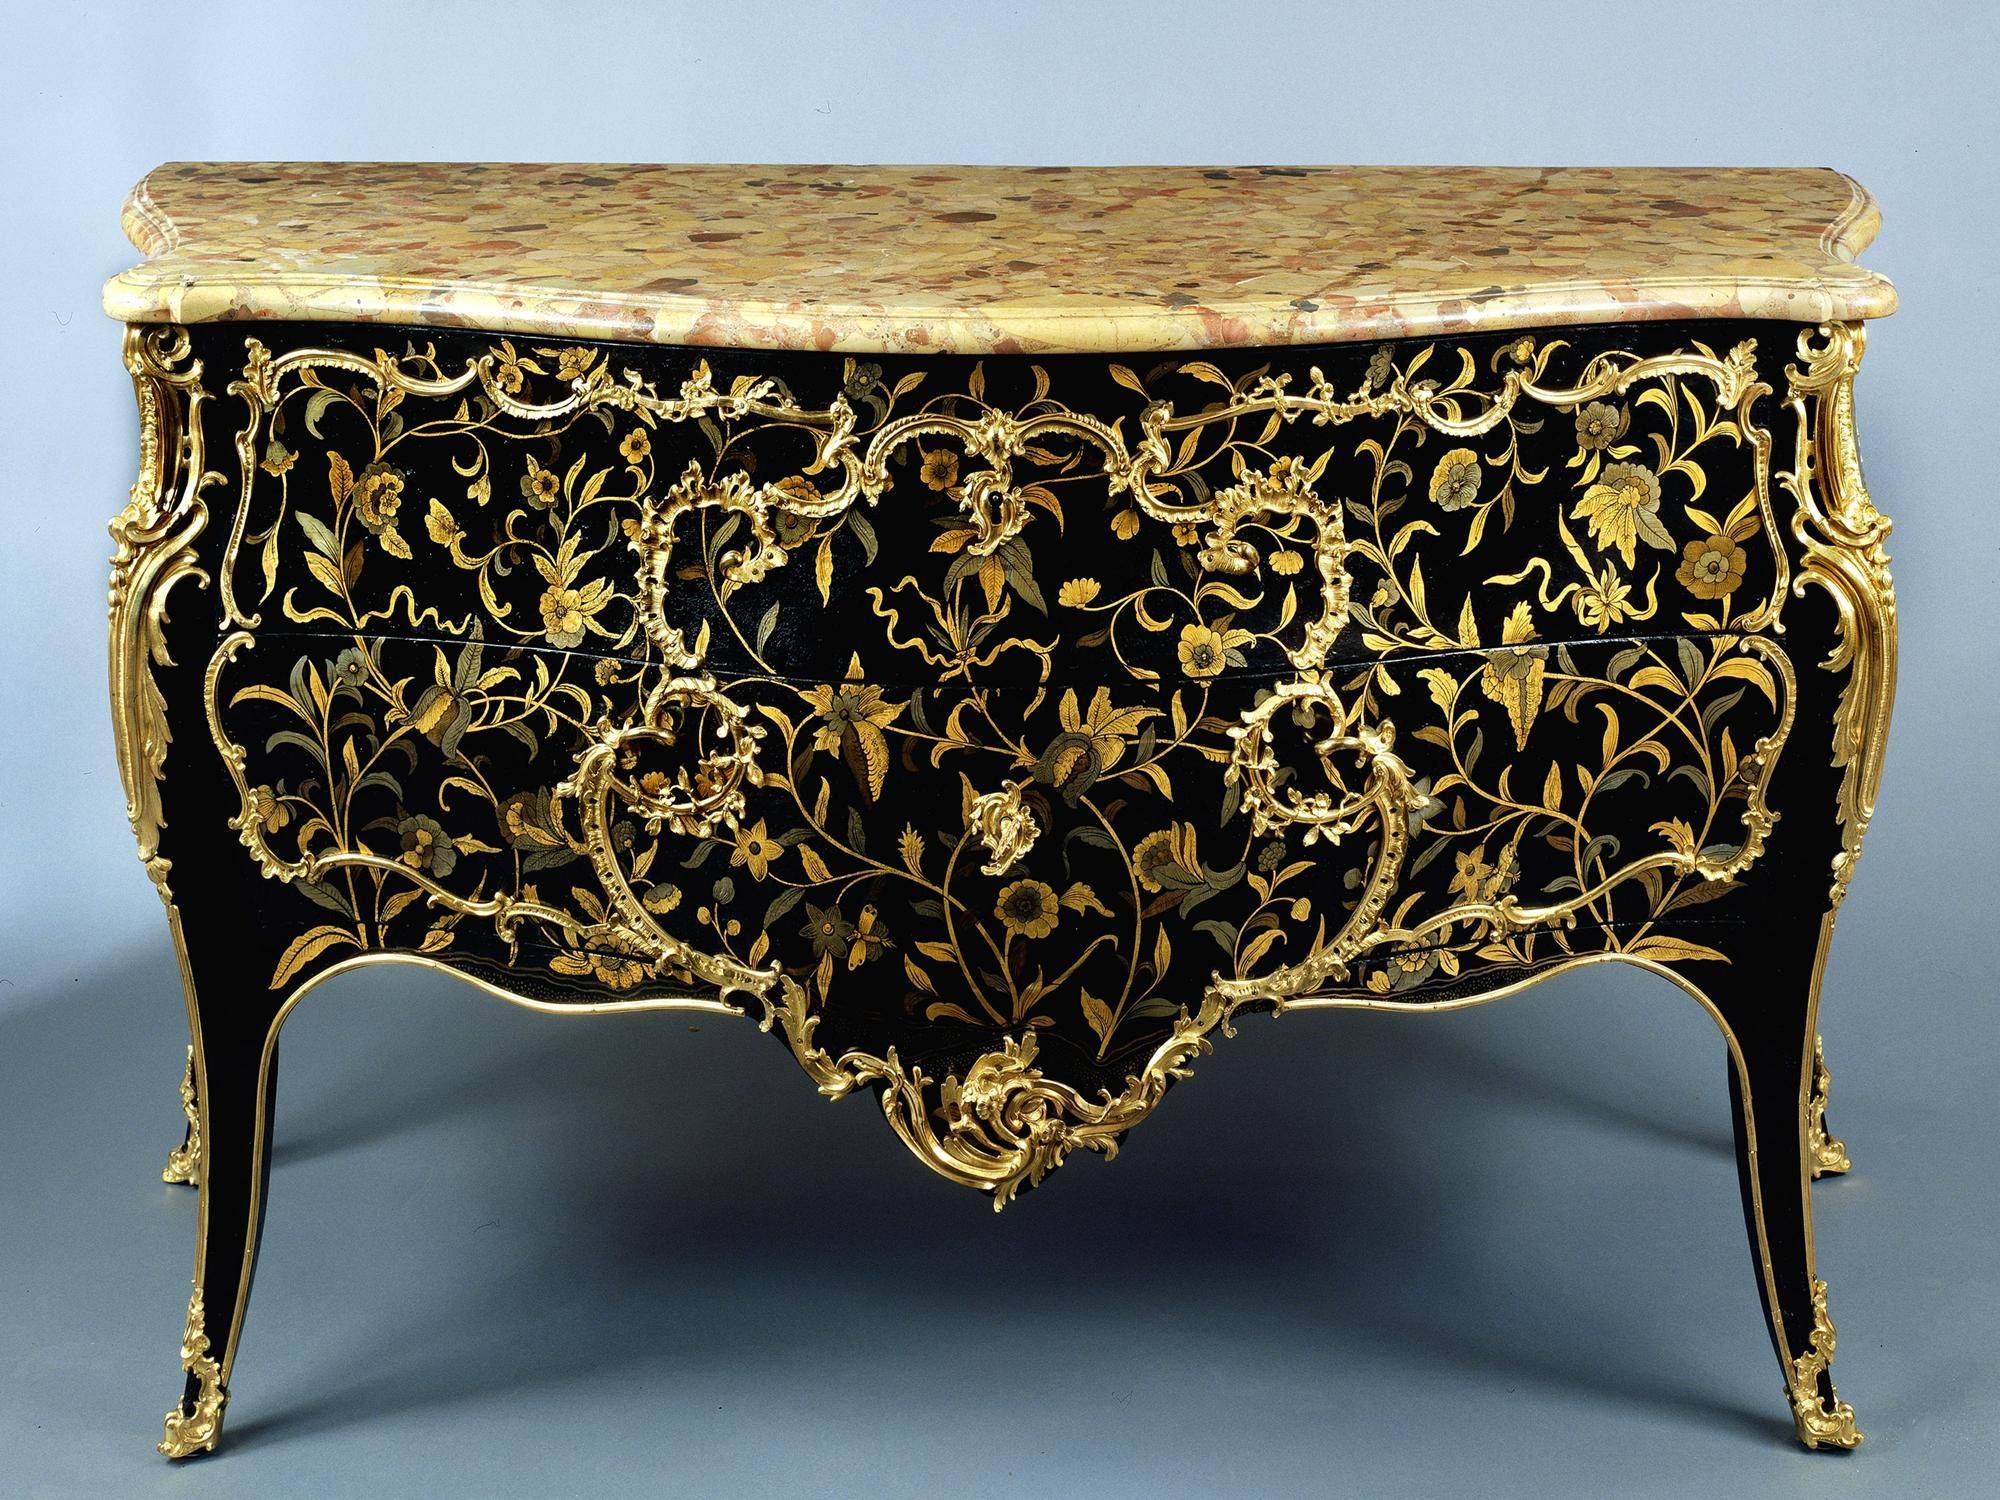 Louis Xv Commode A Louis Xv Black Lacquer And Ormolu Commode With A Pair Of .